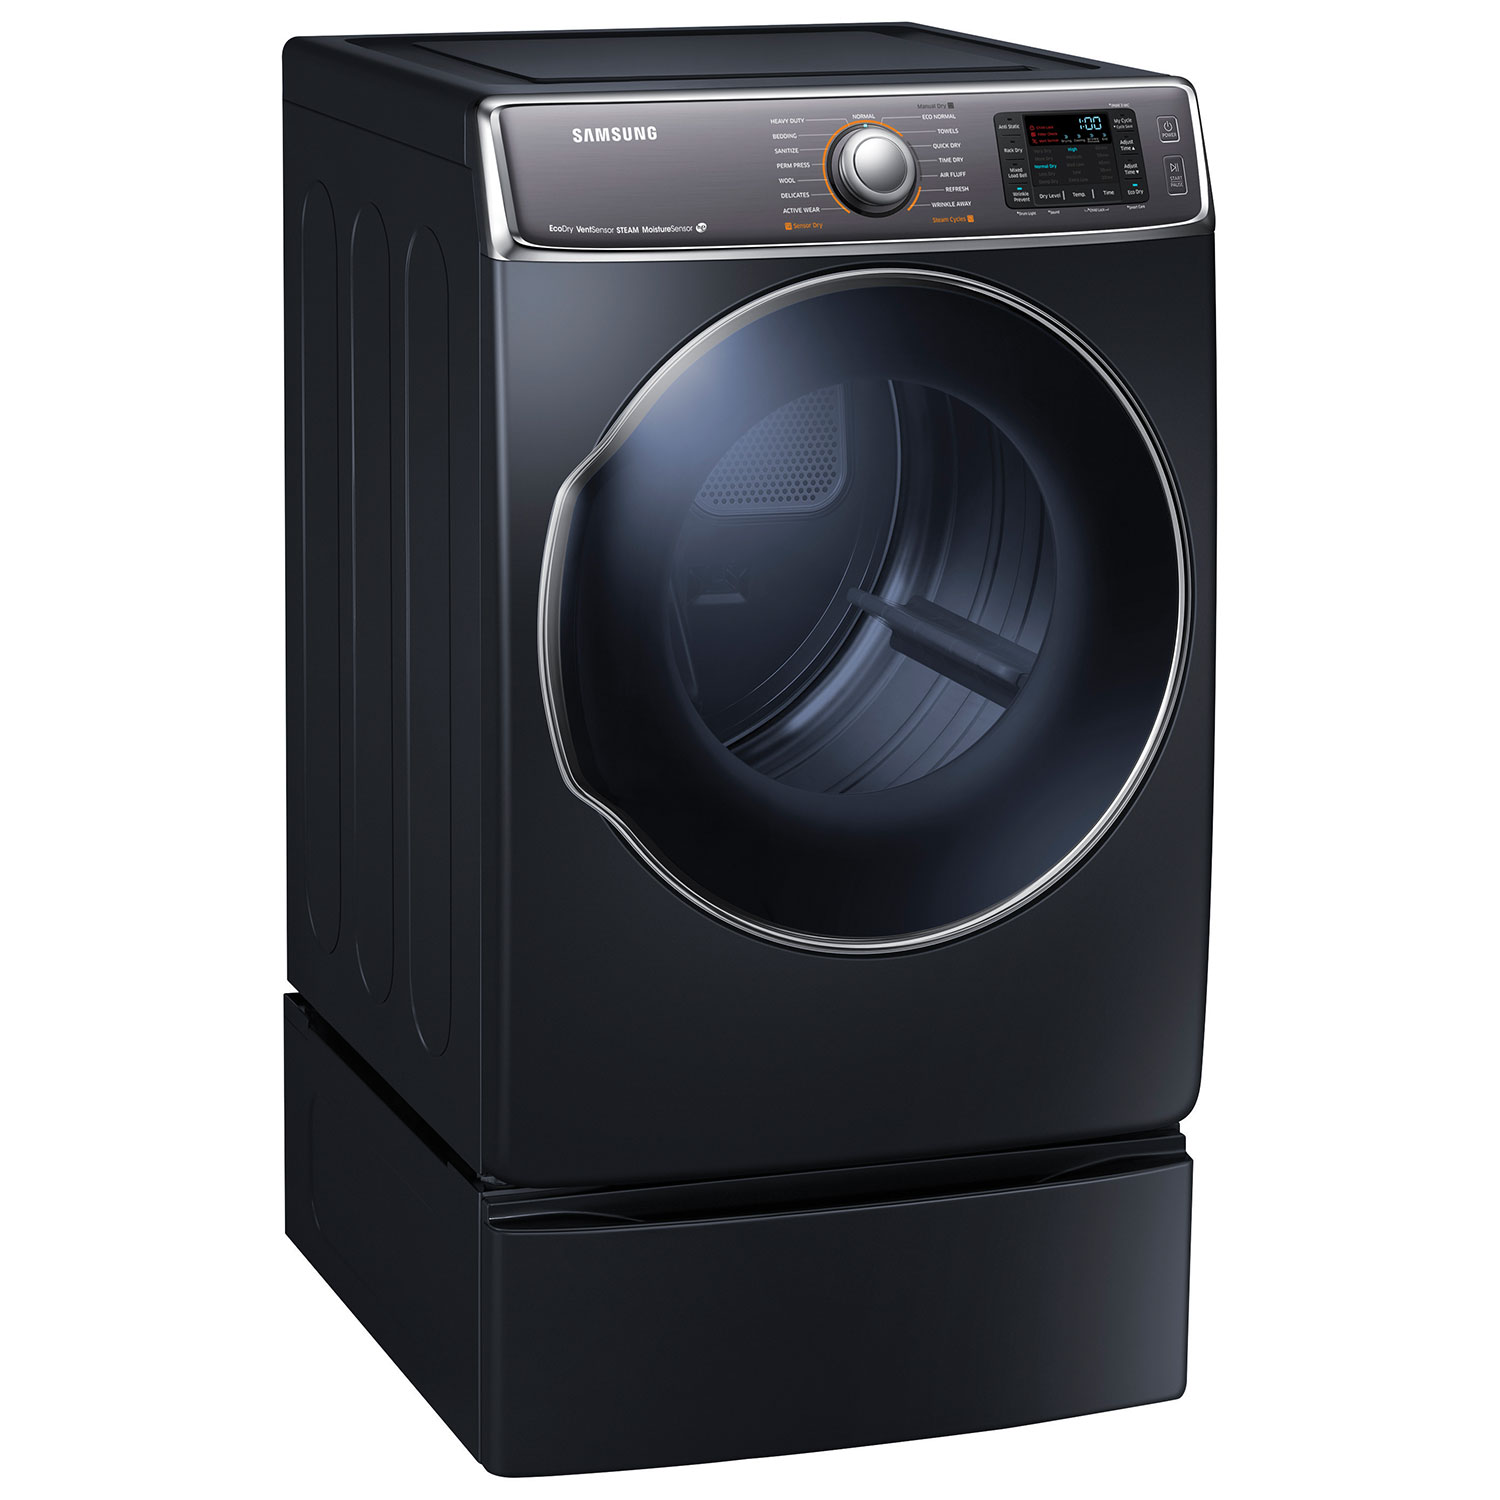 100 samsung dryer turns off before clothes are dry samsung